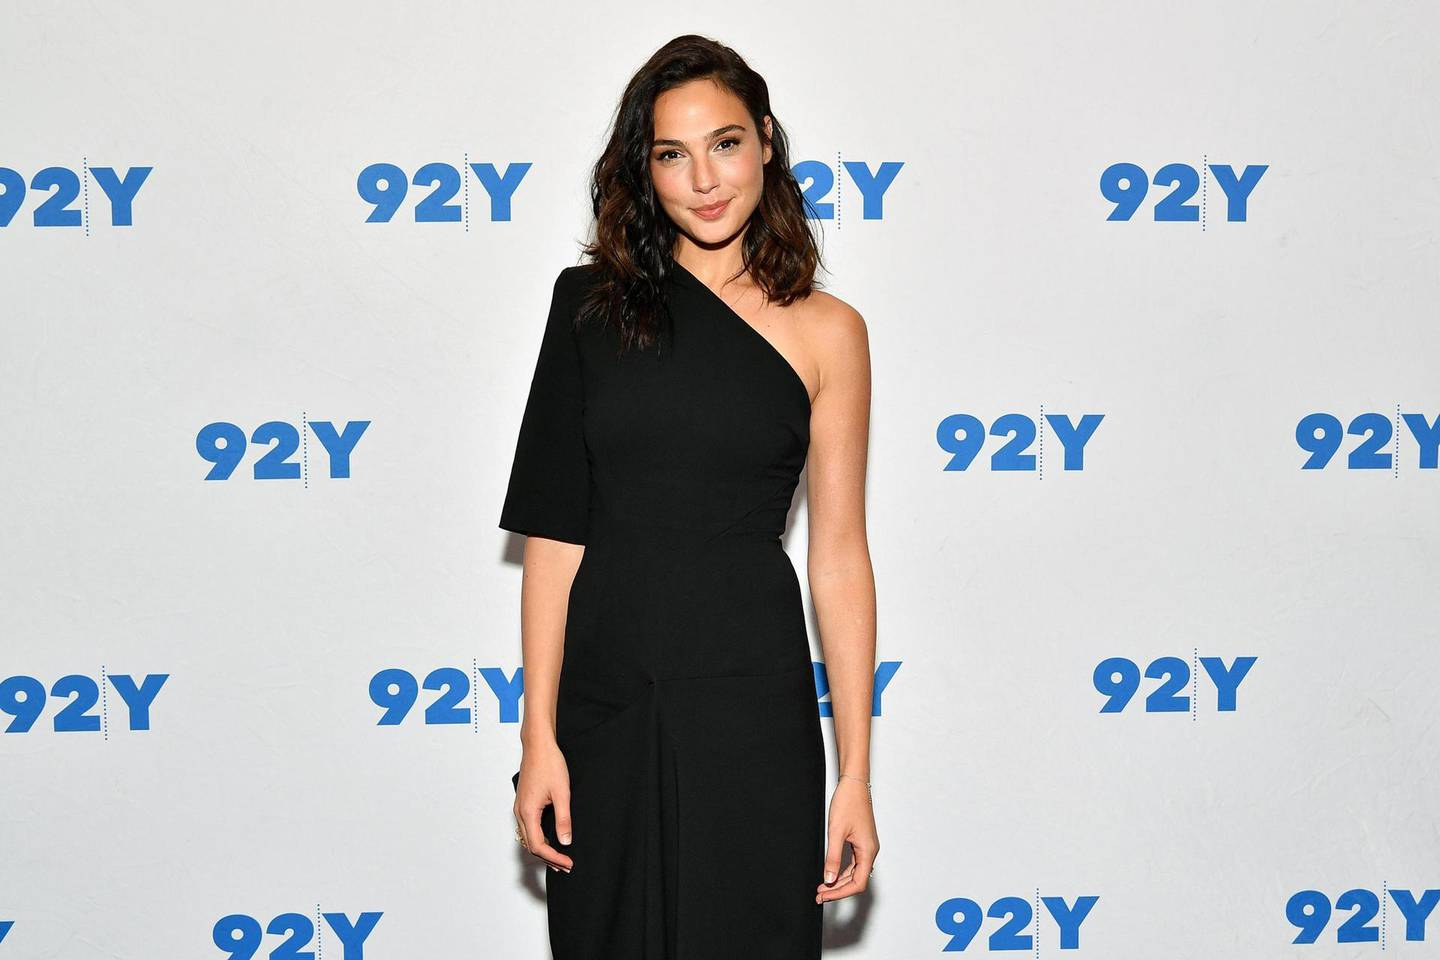 RESIZED. NEW YORK, NY - OCTOBER 01:  Gal Gadot attends Gal Gadot and Meher Tatna in Conversation with Carla Sosenko at 92nd Street Y on October 1, 2017 in New York City.  (Photo by Dia Dipasupil/Getty Images)